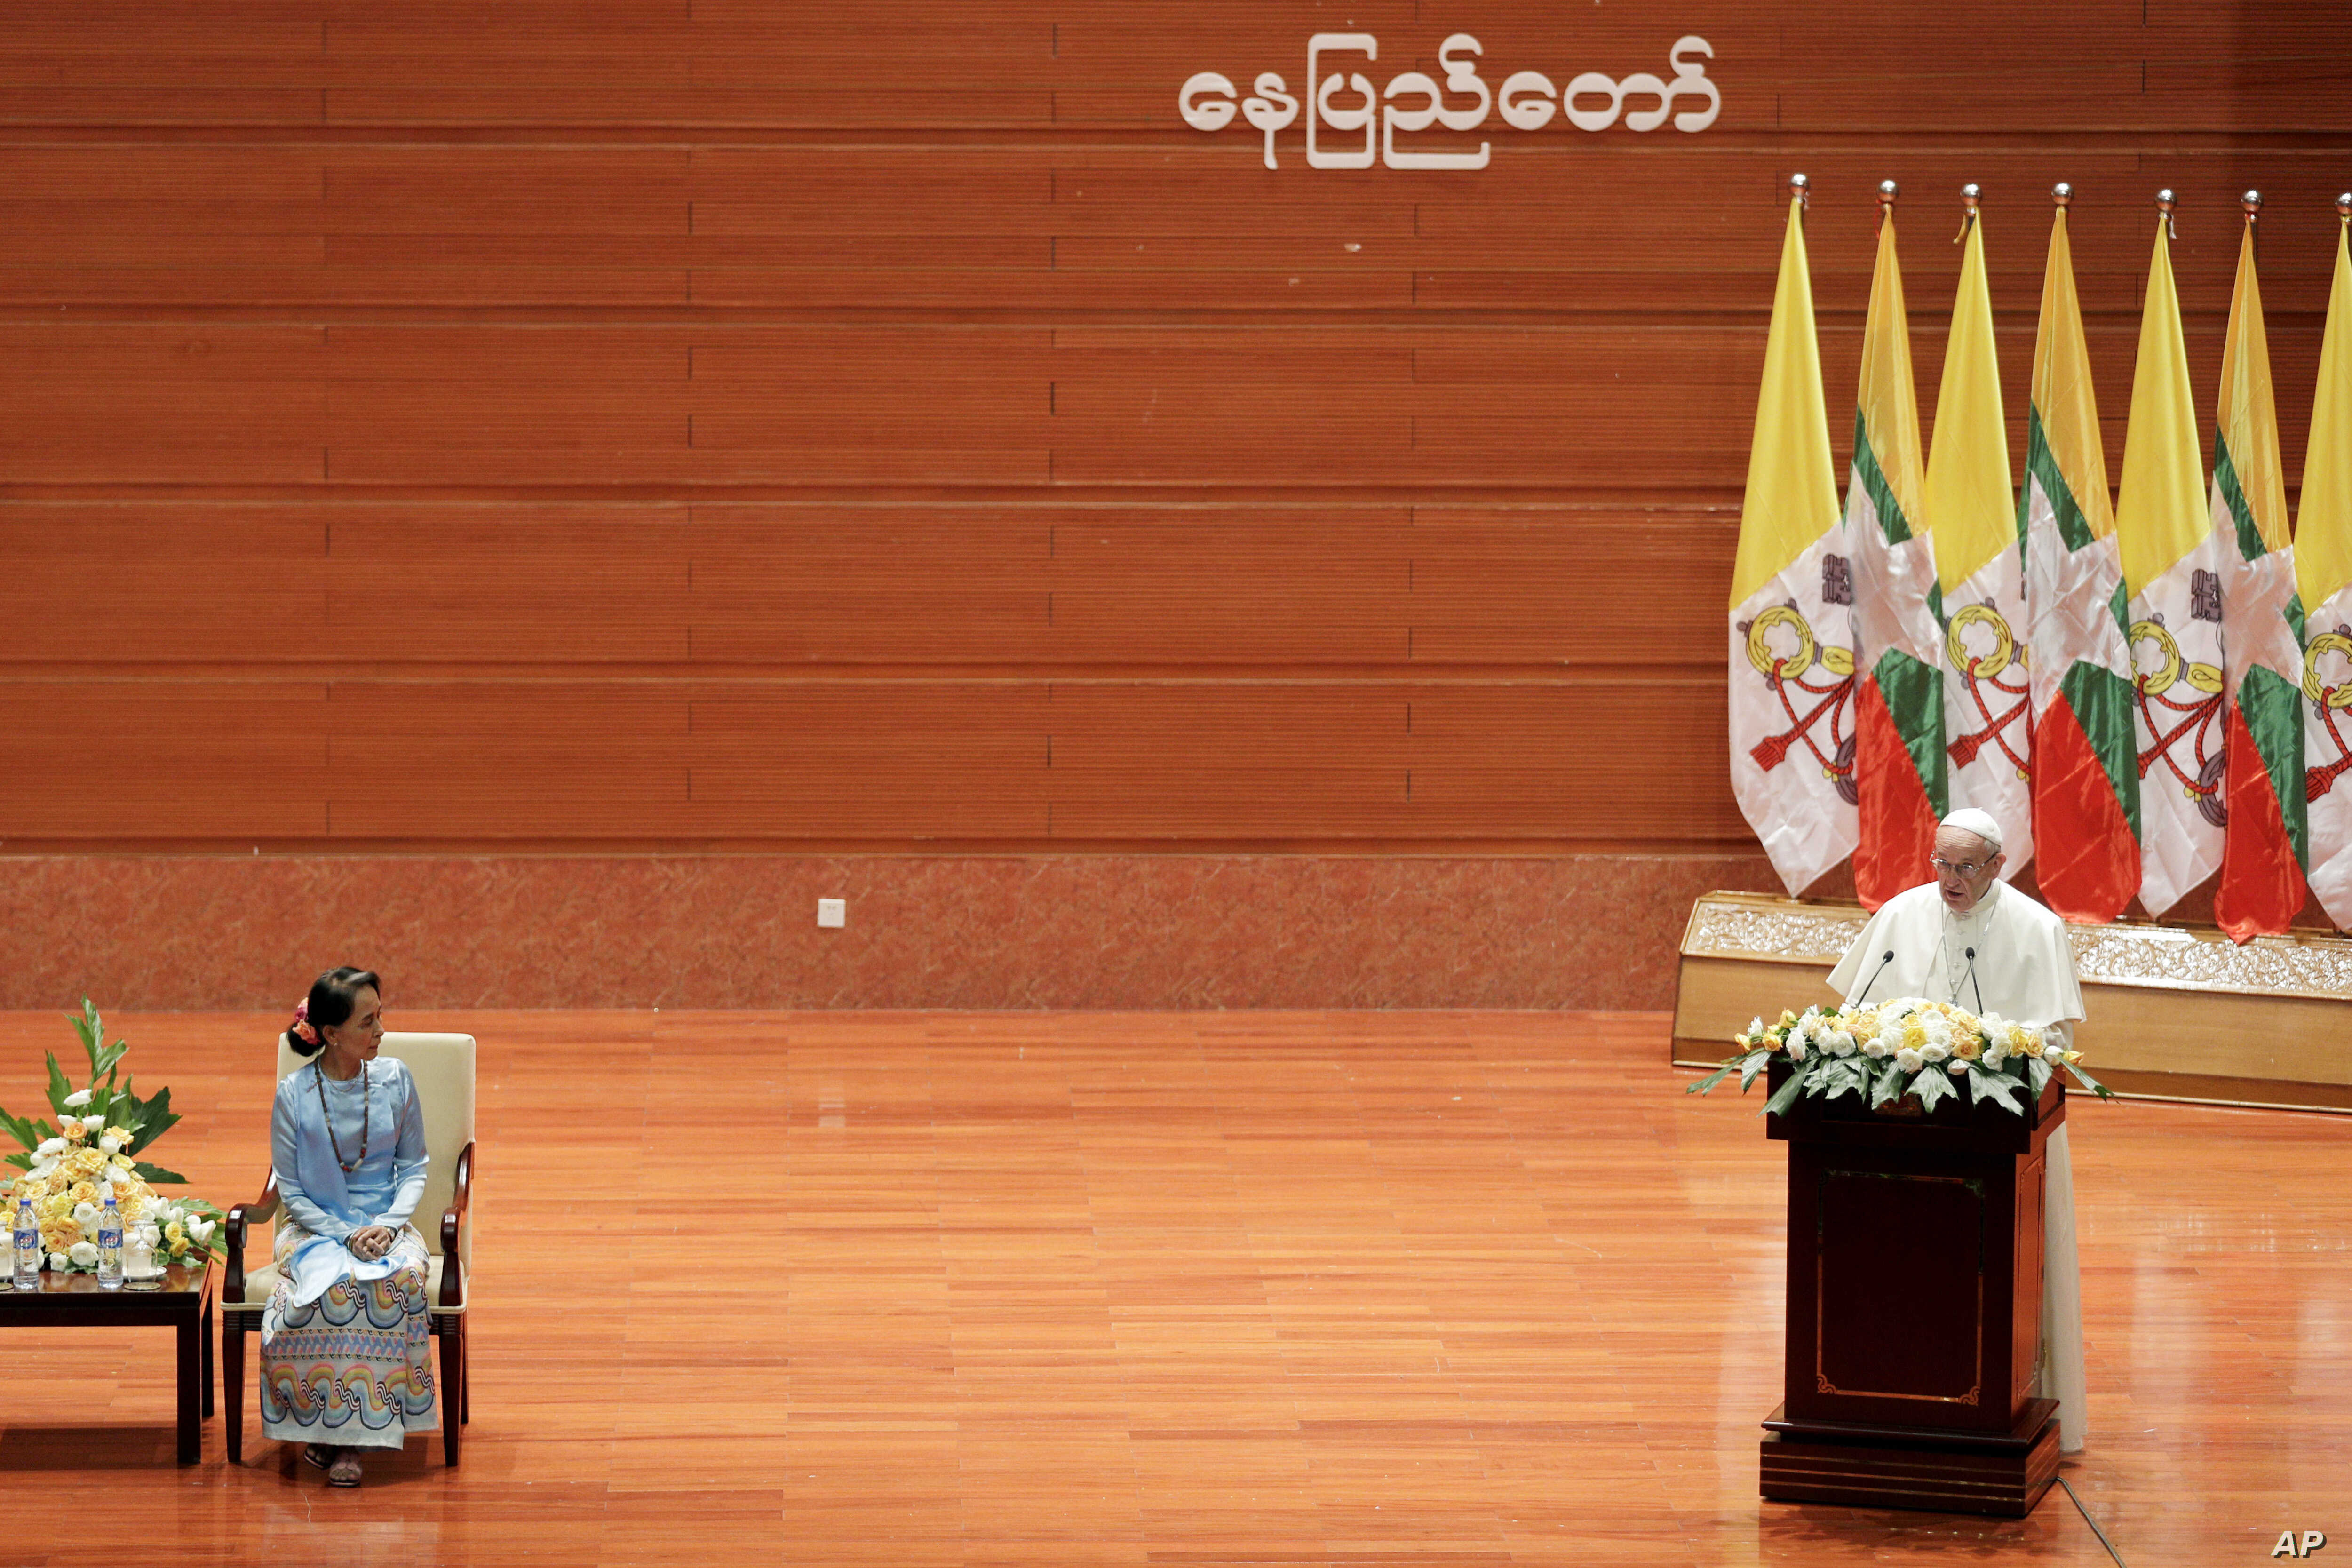 Myanmar's leader Aung San Suu Kyi, left, listens as Pope Francis delivers his speech at the International Convention Centre of Naypyitaw, Myanmar, Nov. 28, 2017.